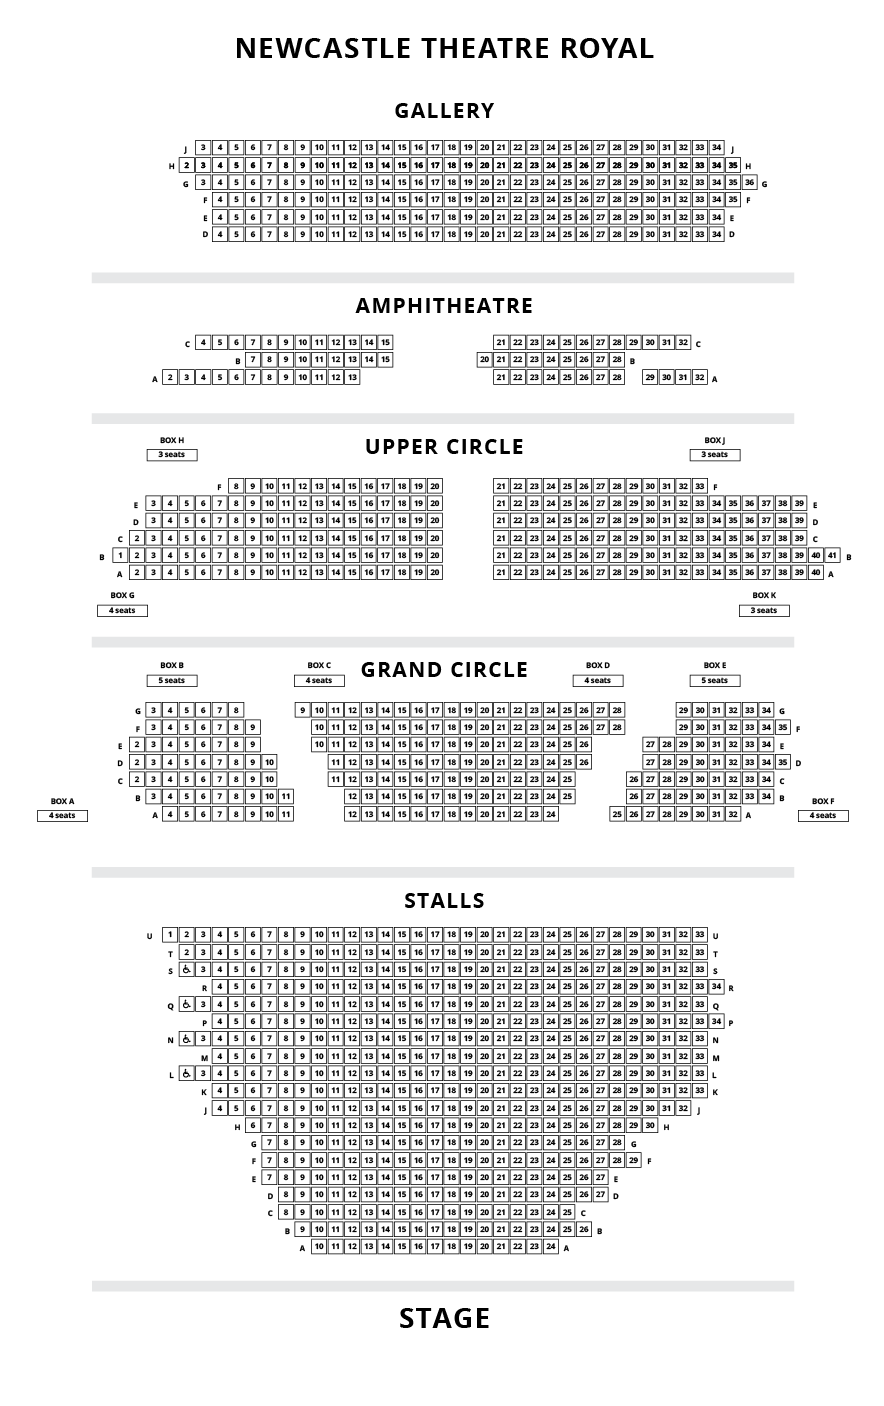 Theatre Royal Newcastle Seating Plan